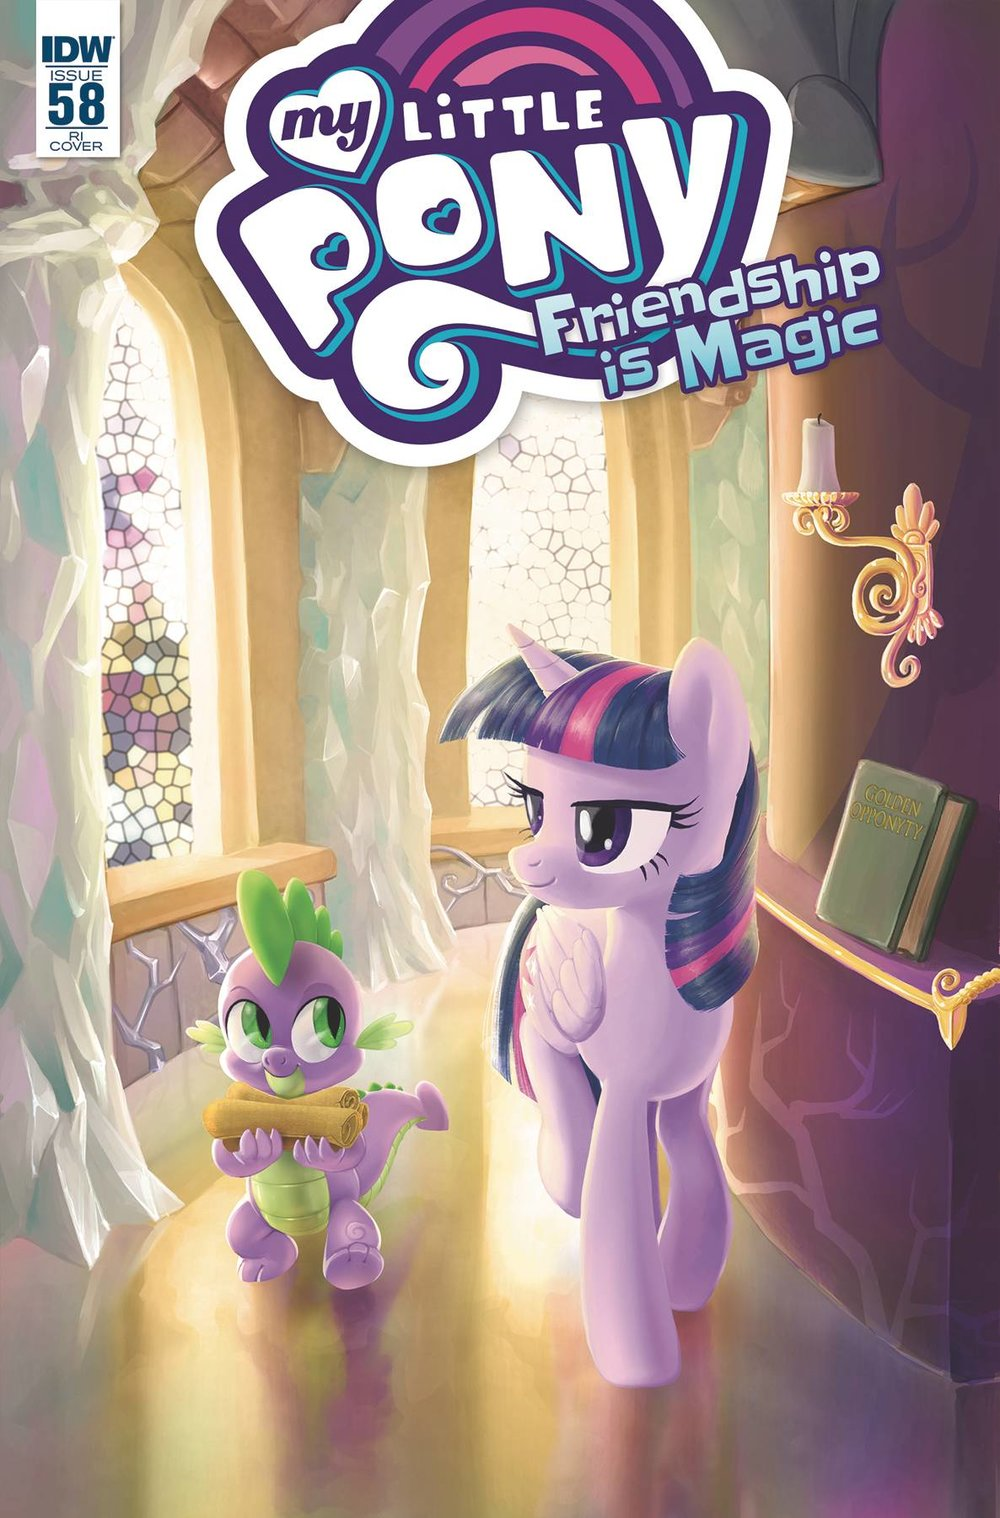 MY LITTLE PONY FRIENDSHIP IS MAGIC 58 10 COPY INCV.jpg